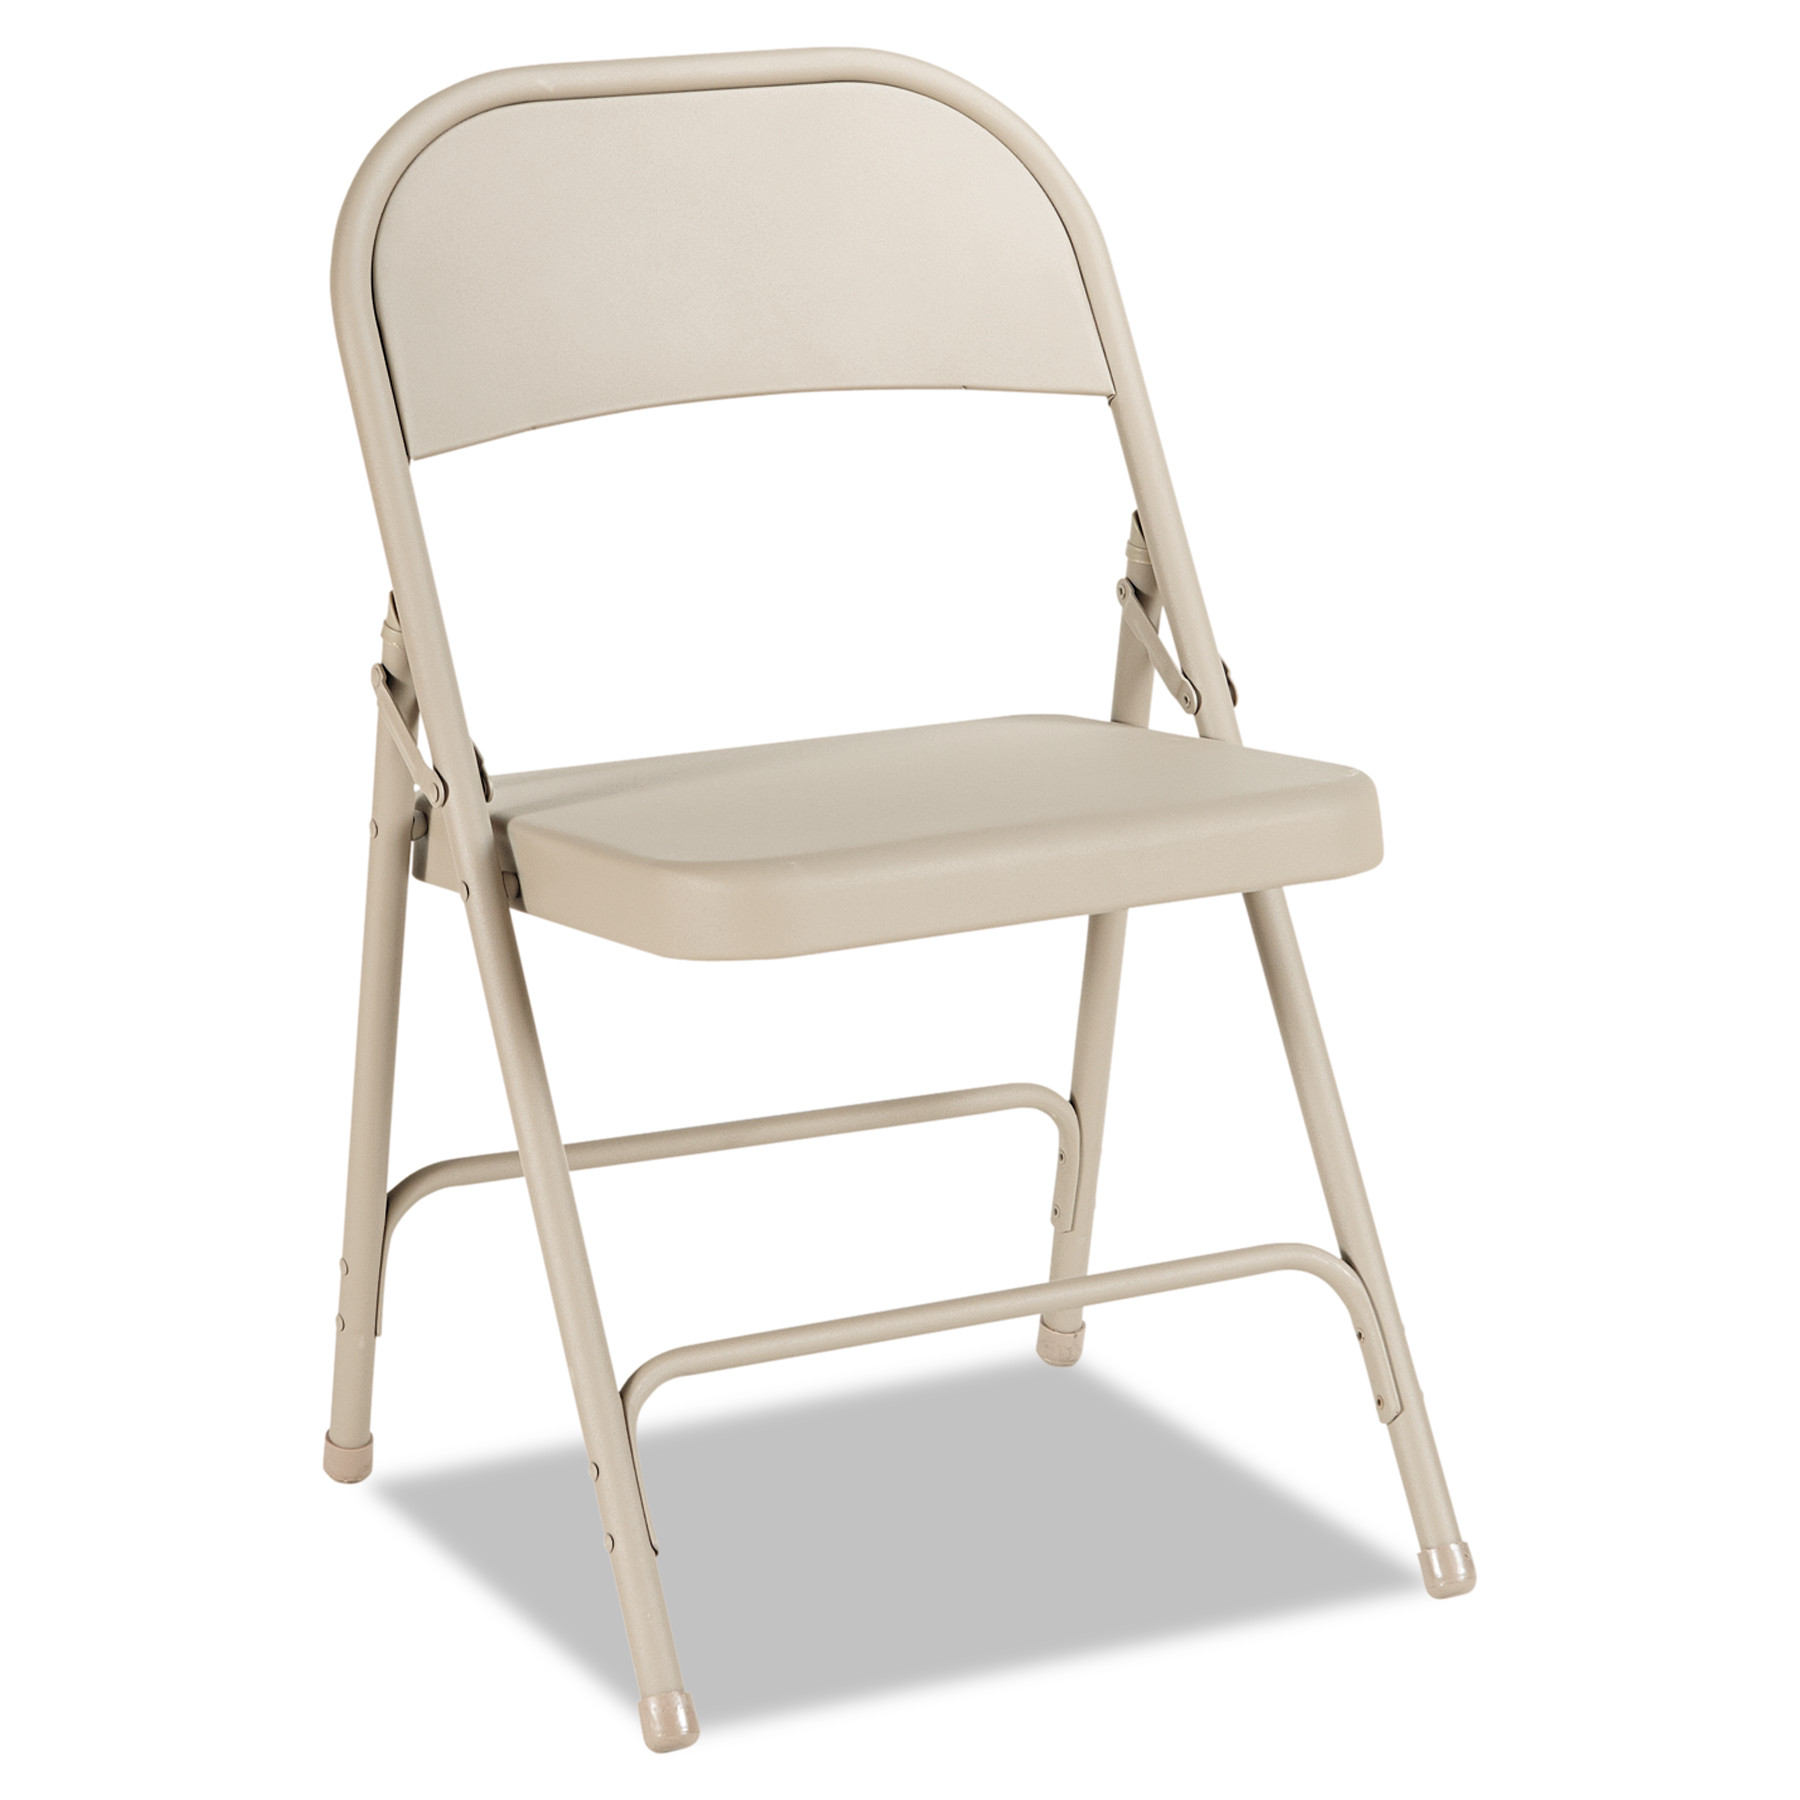 Alera Steel Folding Chair, 4-Pack, Multiple Colors by ALERA